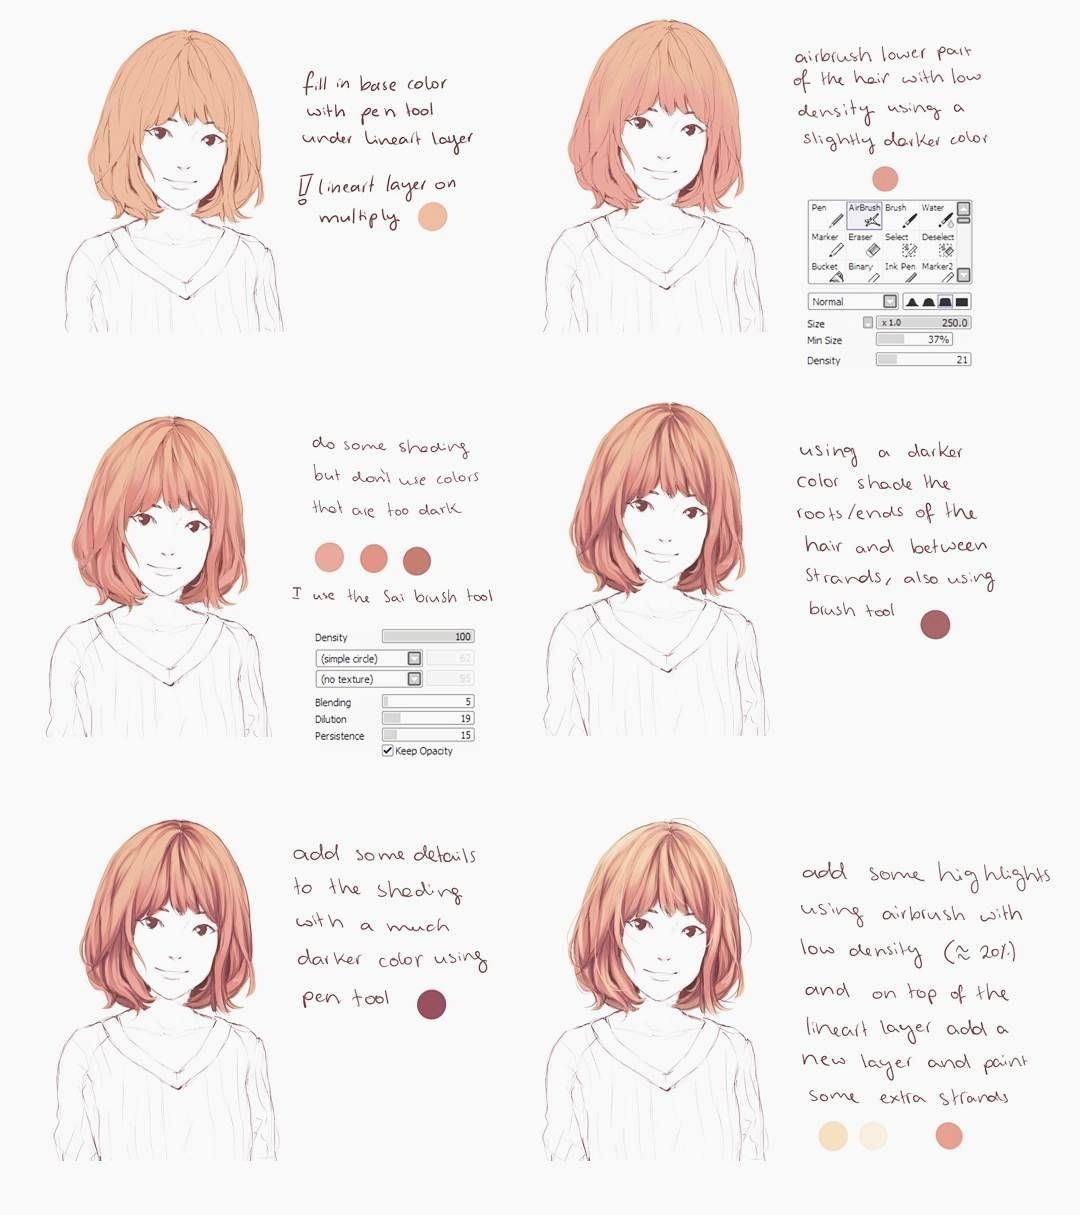 Cartoon Coloring Tutorial Luxury This Is For Paint Tool Sai A Small Hair Coloring Tutorial In 2020 Digital Art Tutorial Anime Hair Color Paint Tool Sai